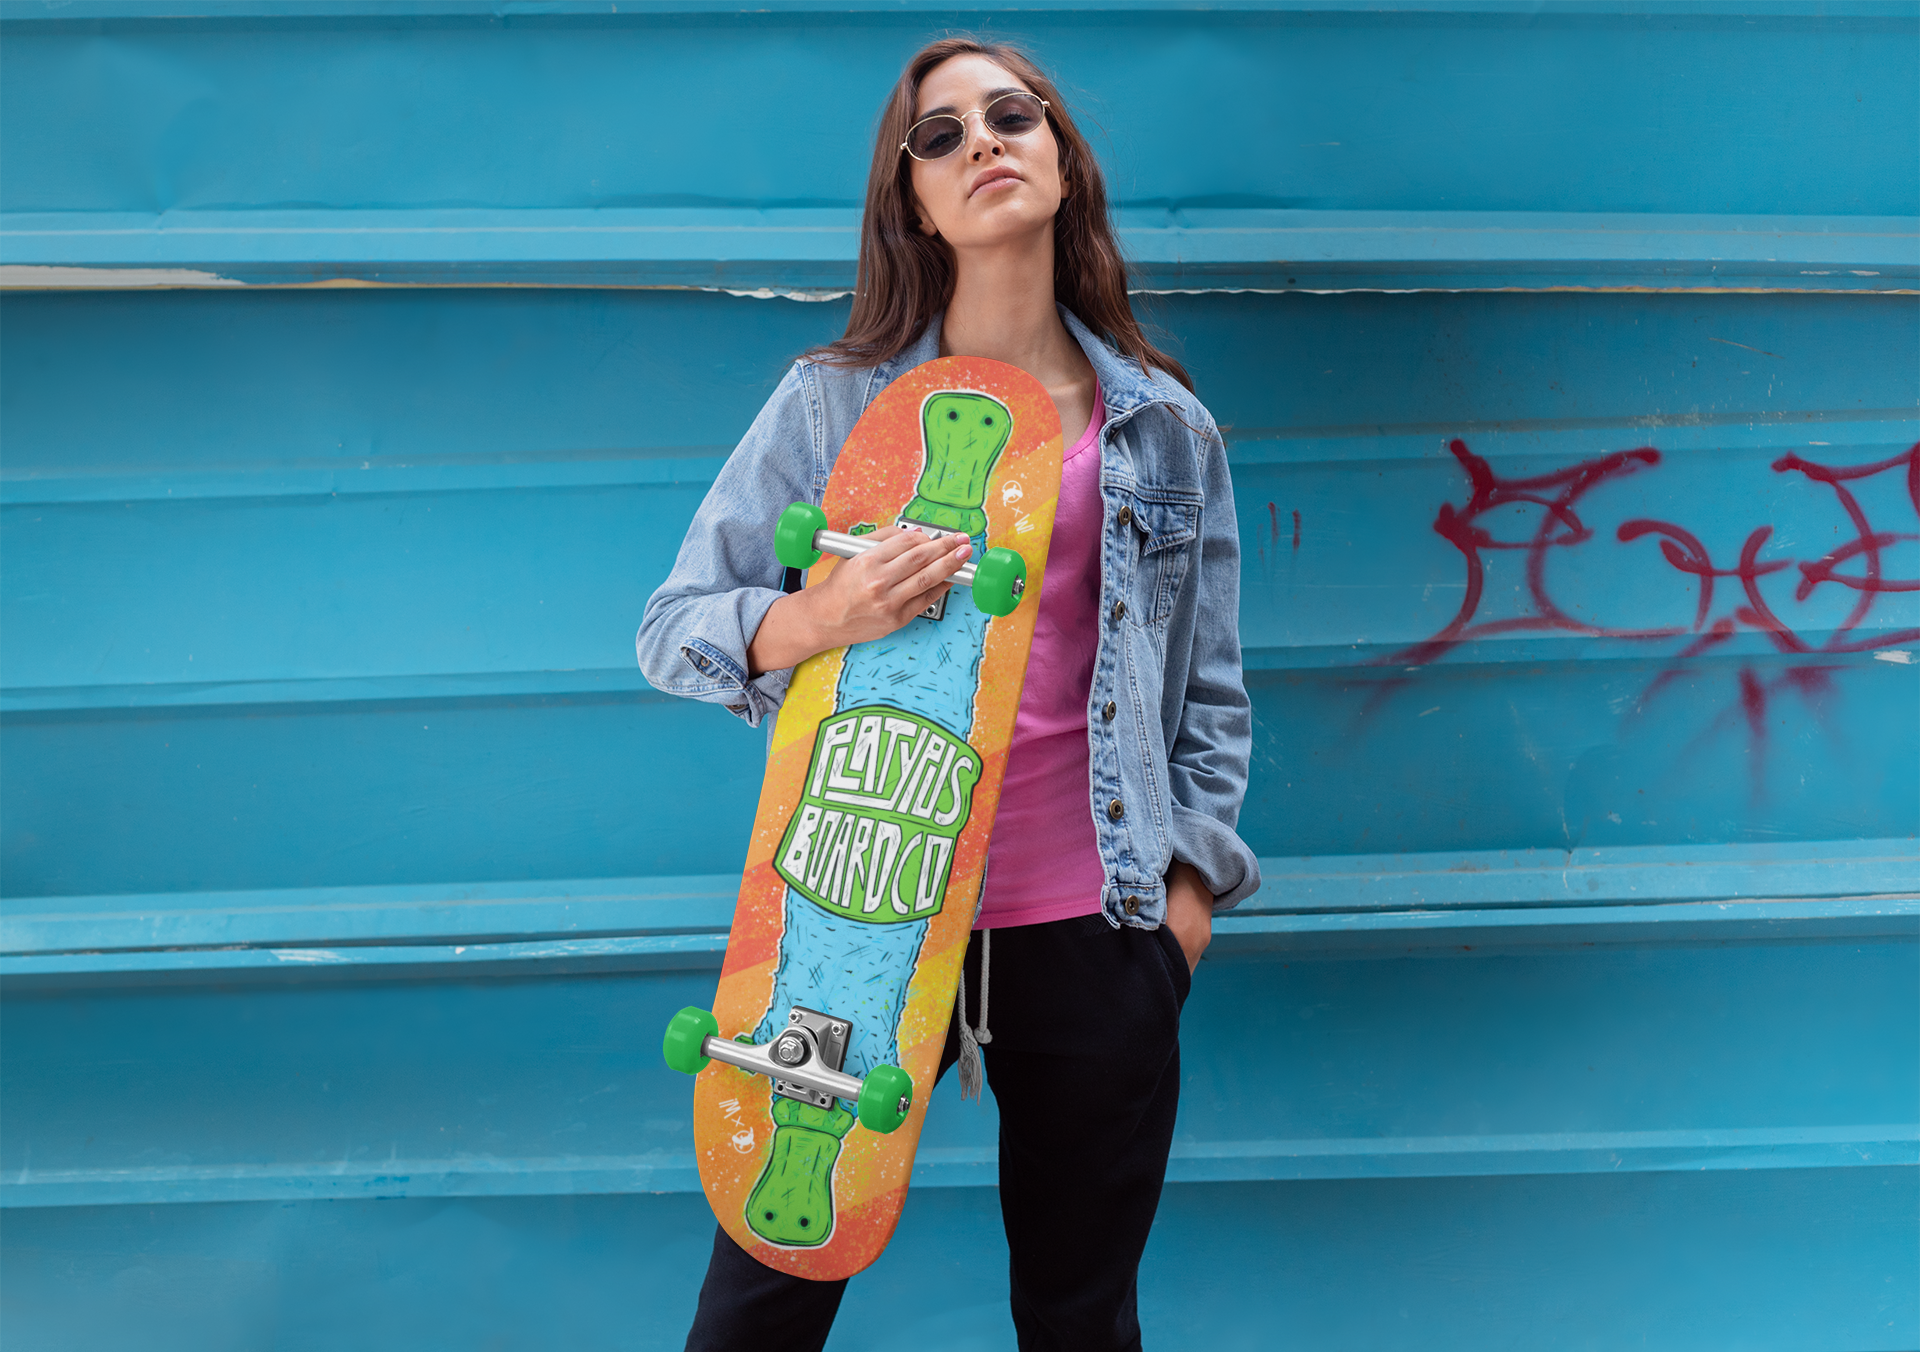 mockup-of-a-woman-holding-with-sunglasses-holding-a-skateboard-27122.png